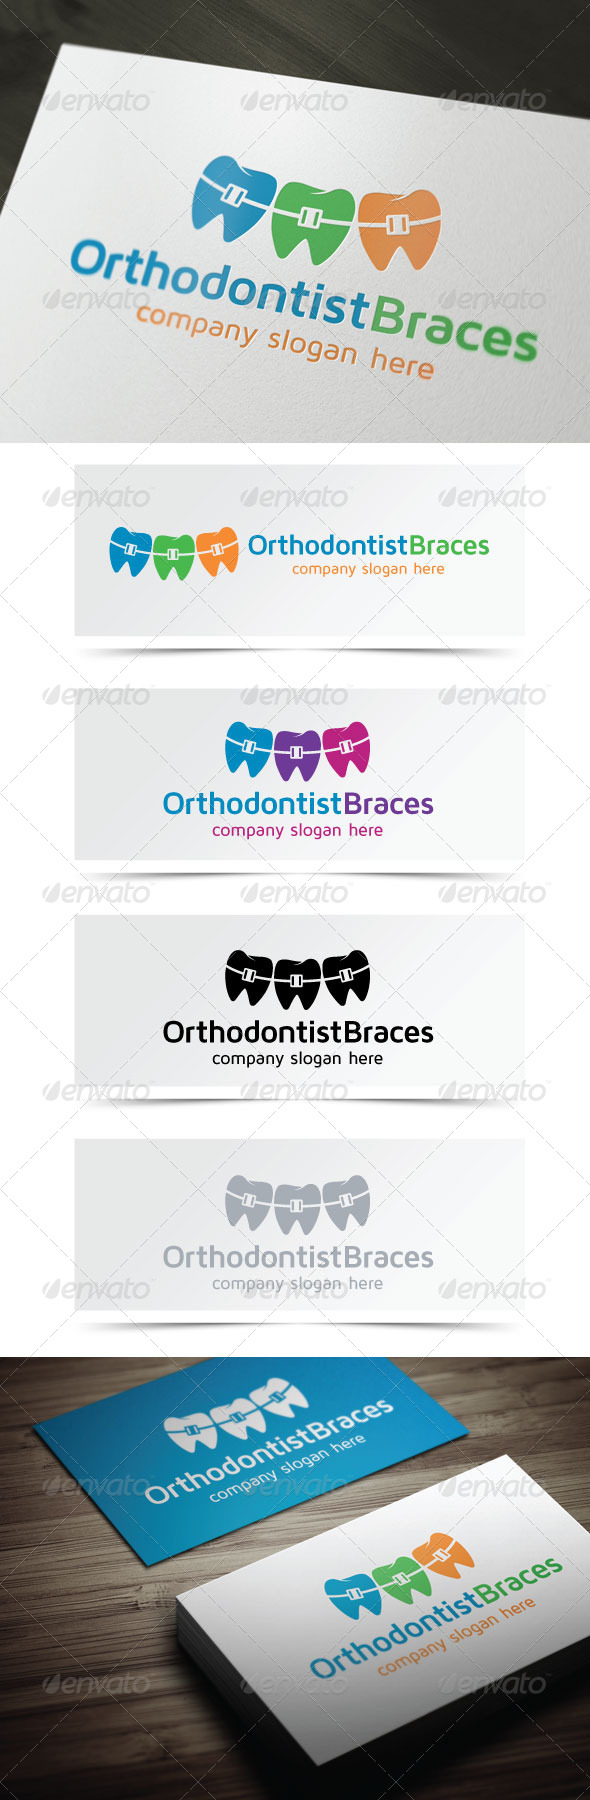 GraphicRiver Orthodontist Braces 5158890